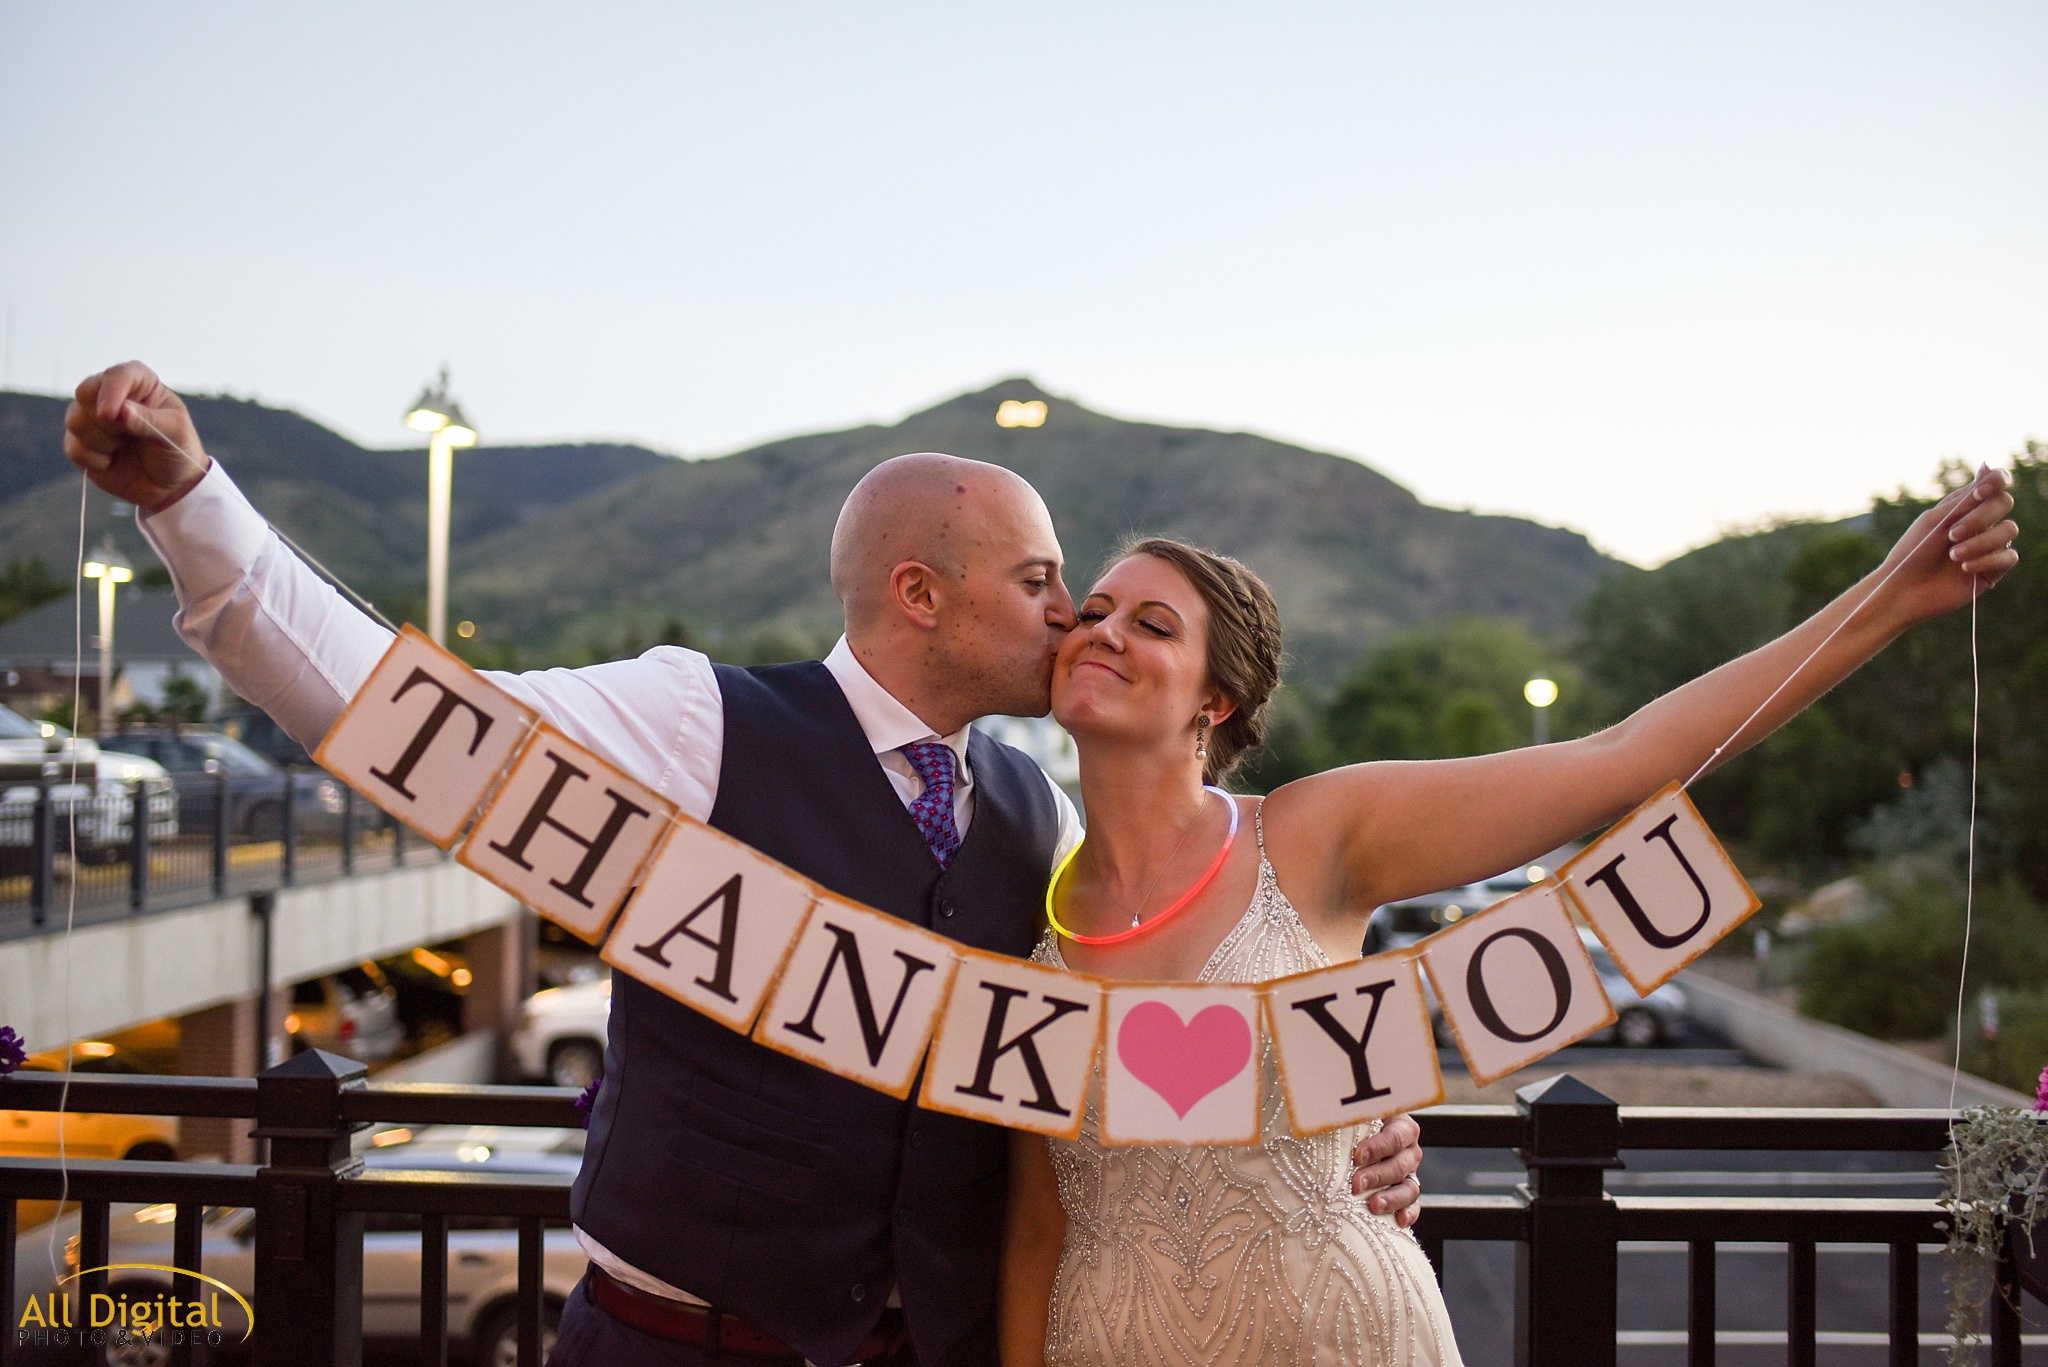 Mary & Jeremy holding up a Thank You sign during their wedding at the Golden Hotel. Photographed by All Digital Studios